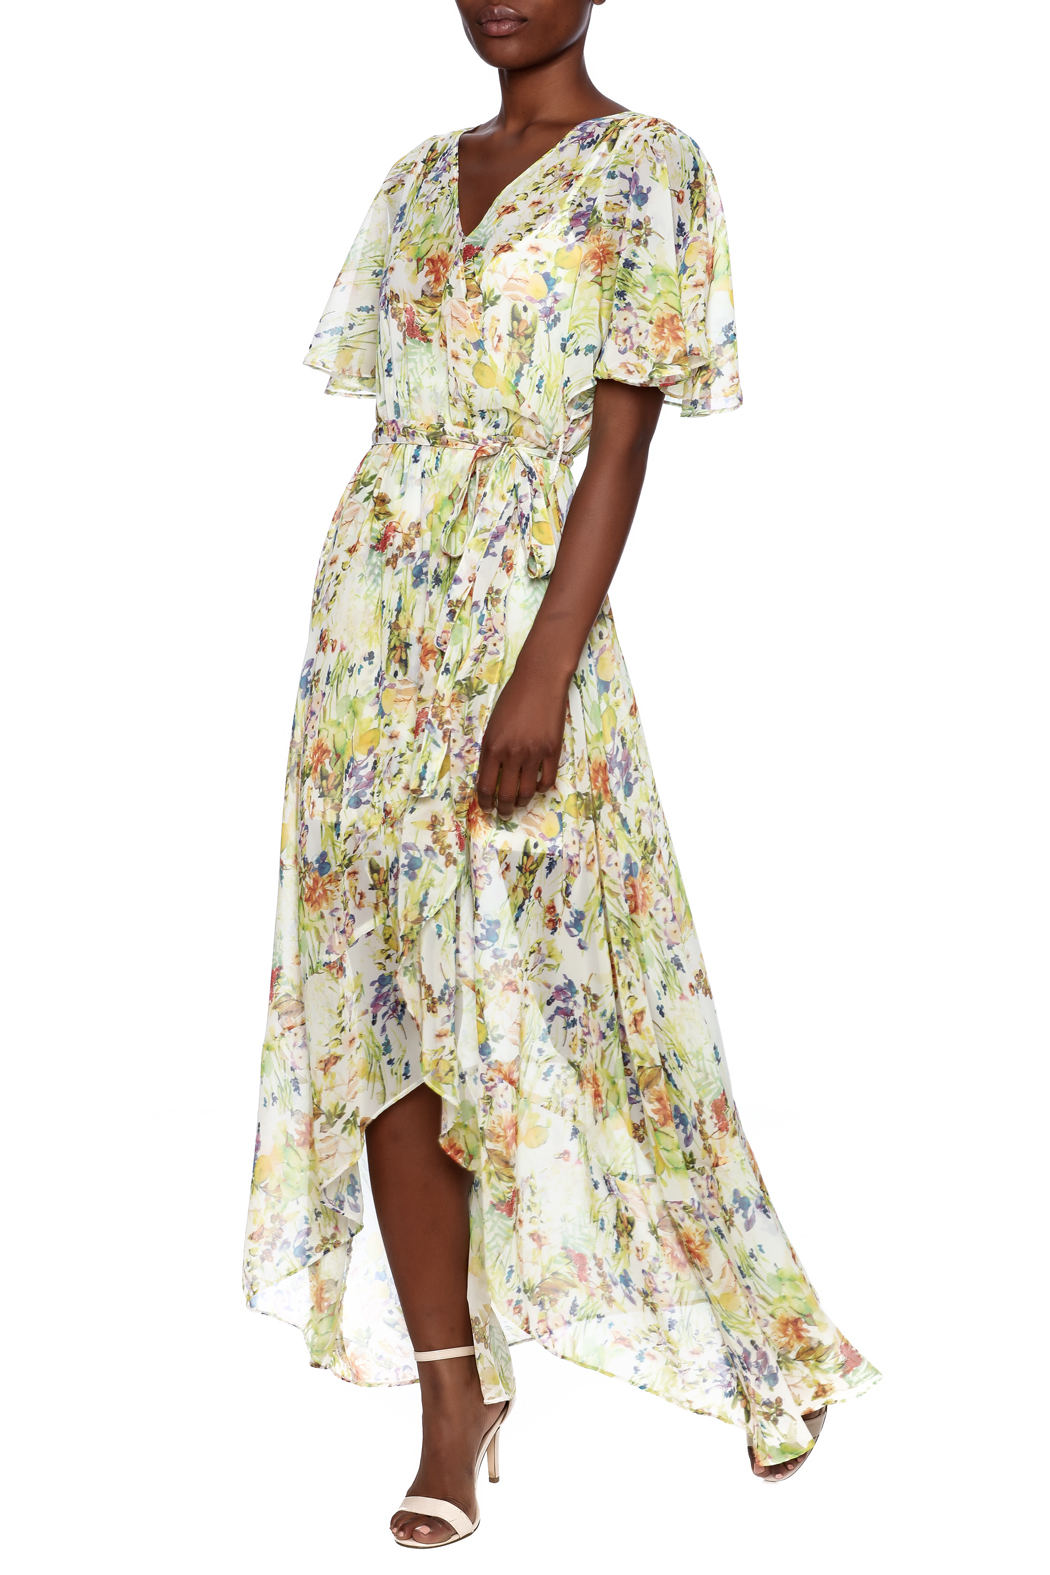 Ark & Co. Floral Wing Maxi Dress - Main Image